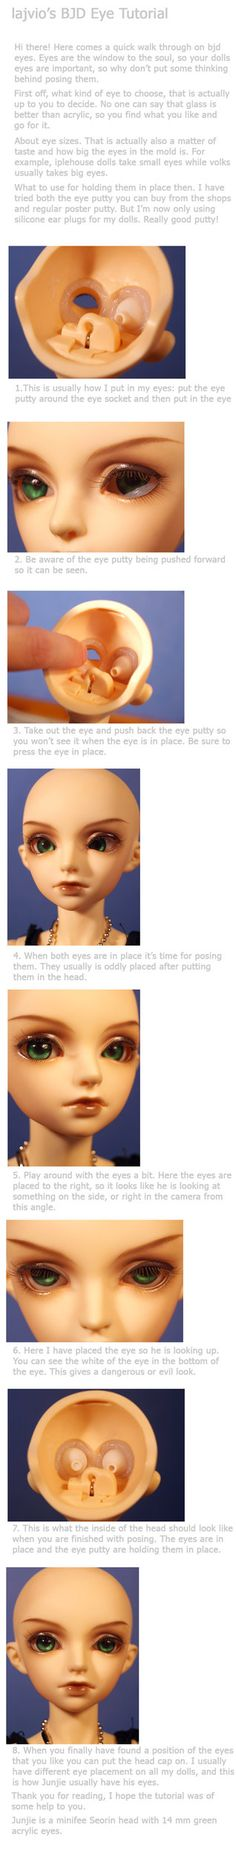 BJD Eye Tutorial by lajvio